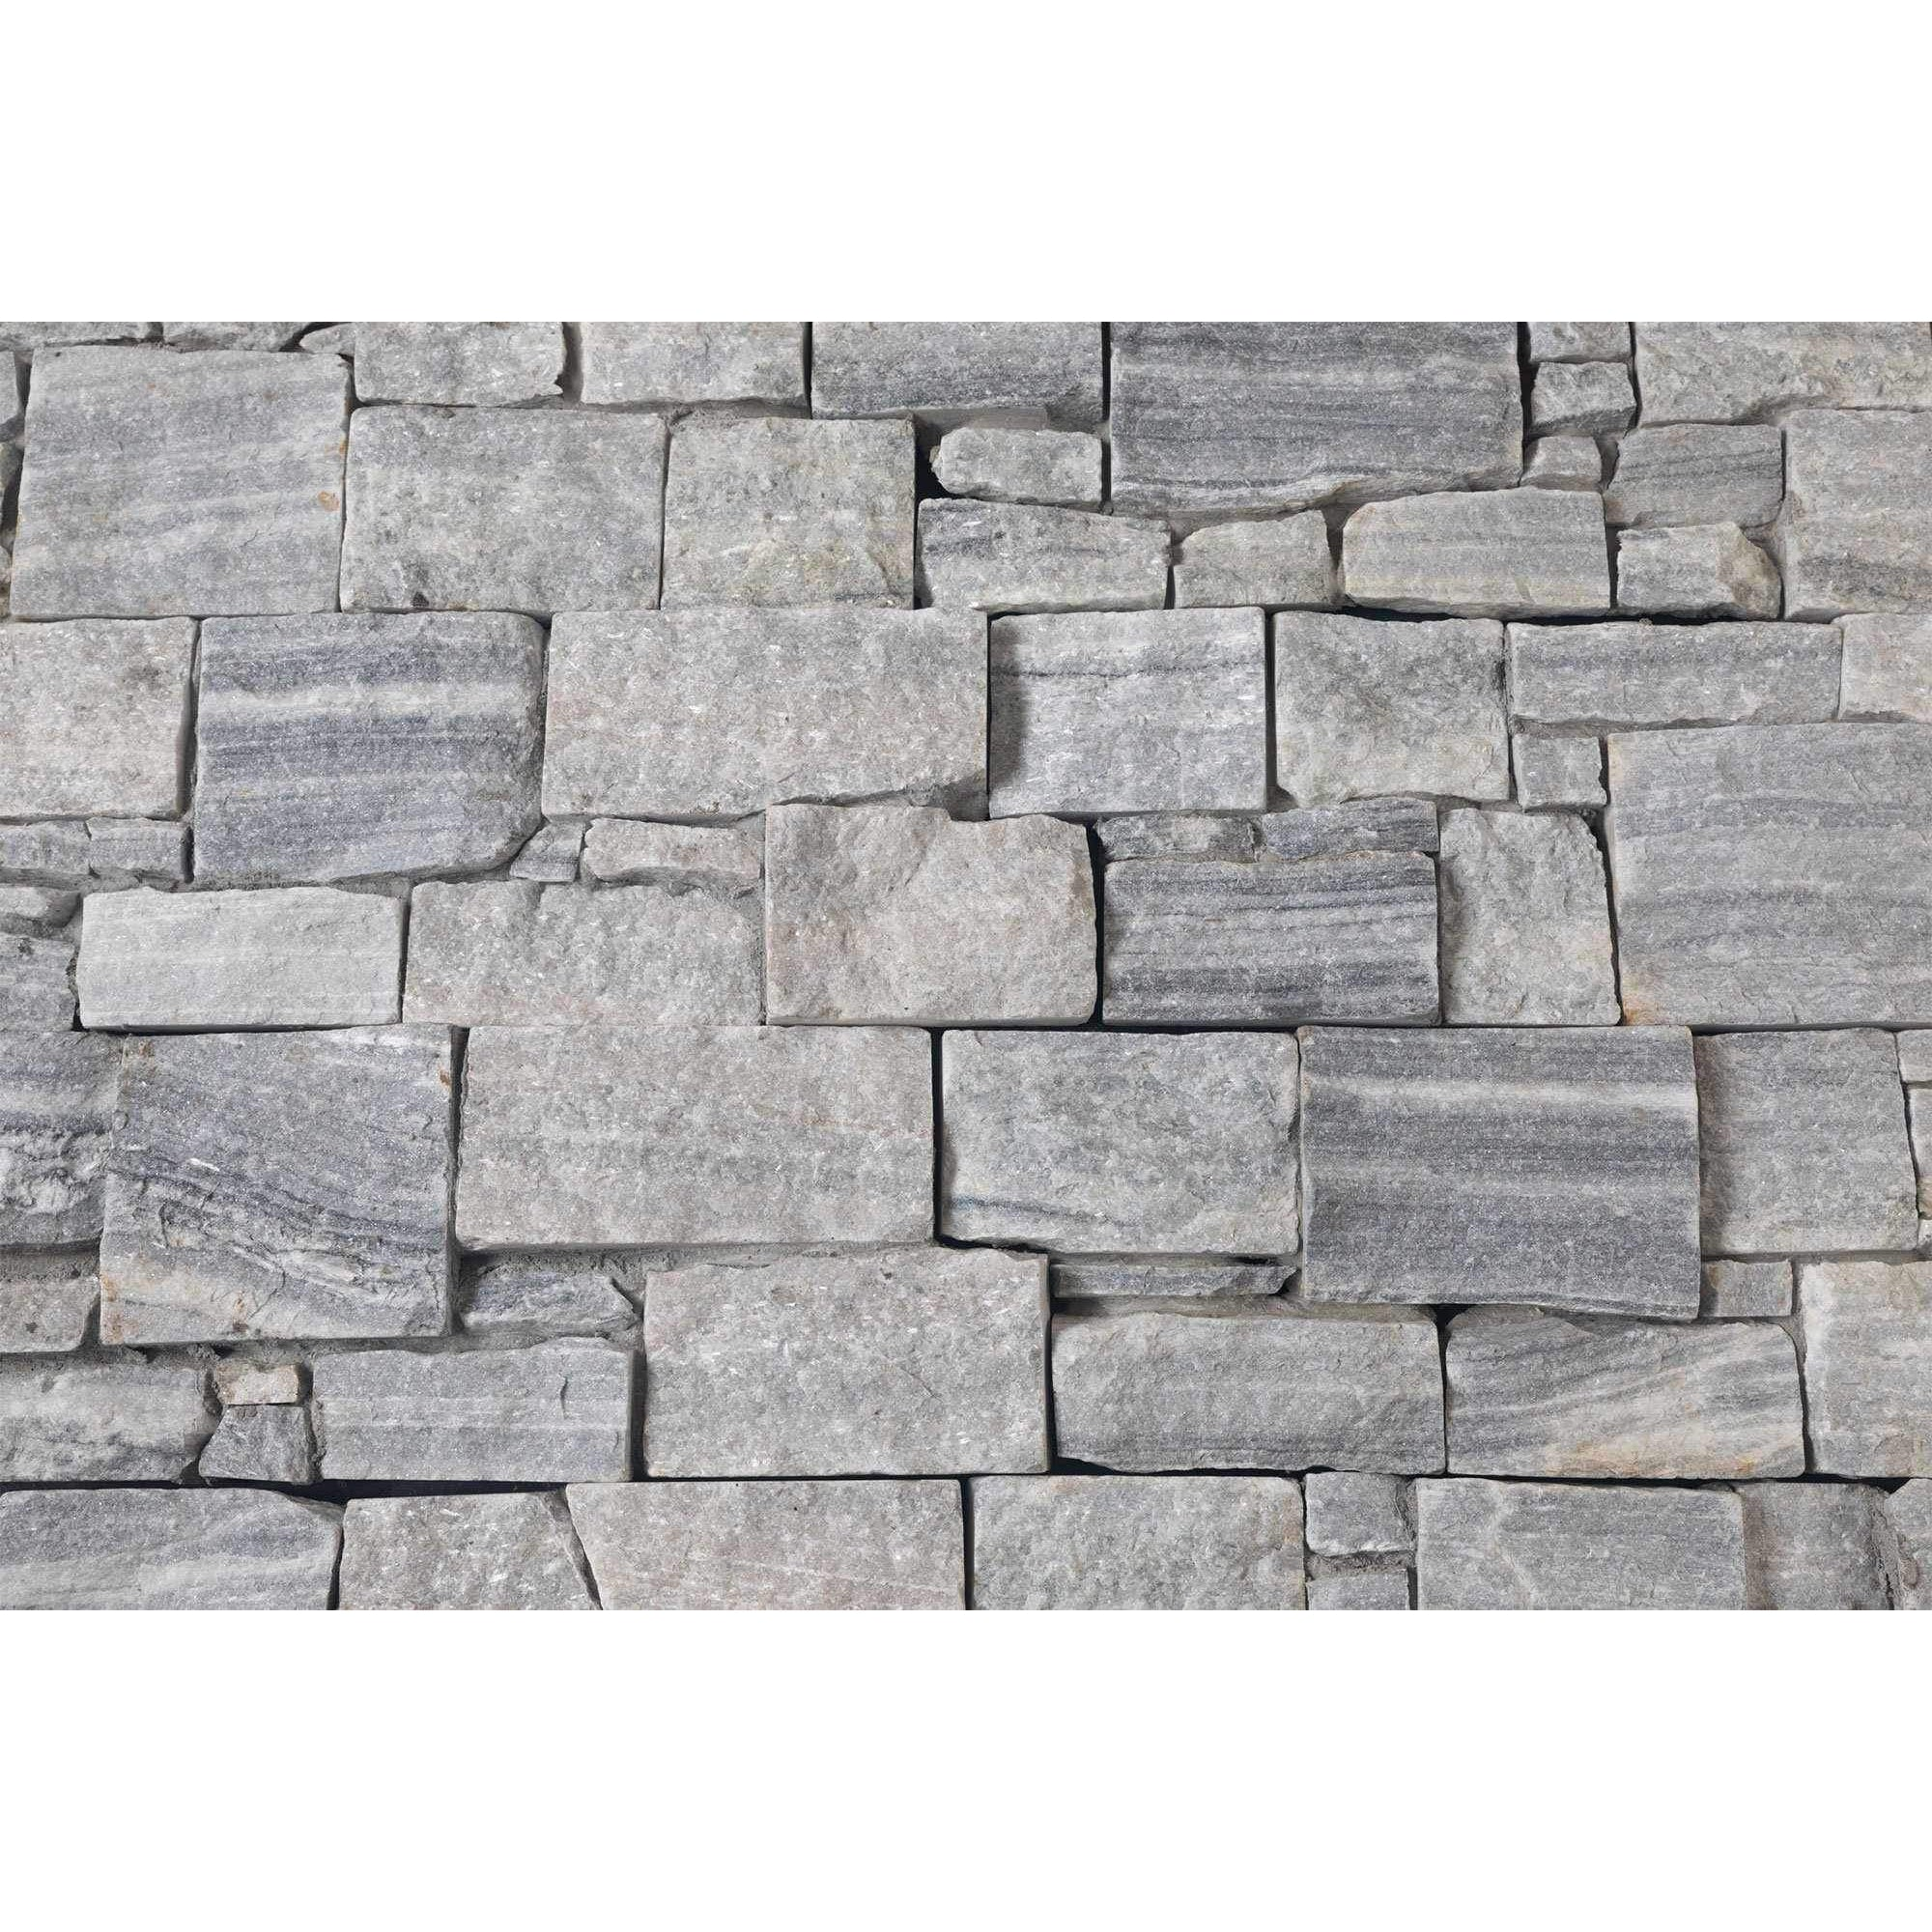 Natural Ledgestone Feature Wall Cladding Panels Cloudy Grey Stone And Rock